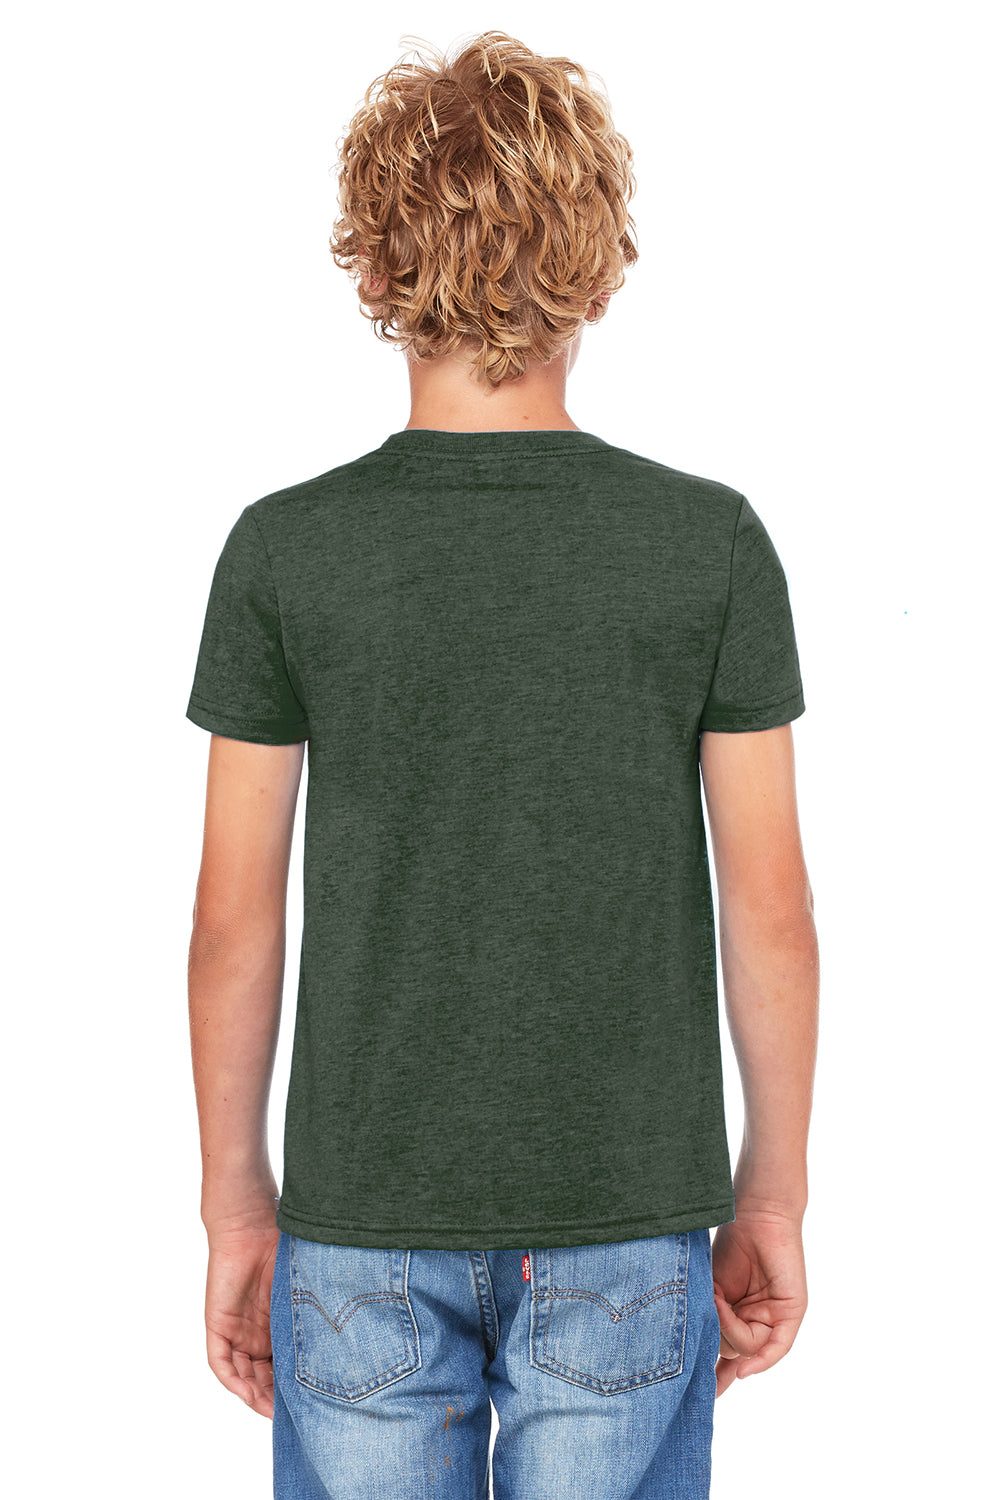 Bella + Canvas 3001Y Youth Jersey Short Sleeve Crewneck T-Shirt Heather Forest Green Back